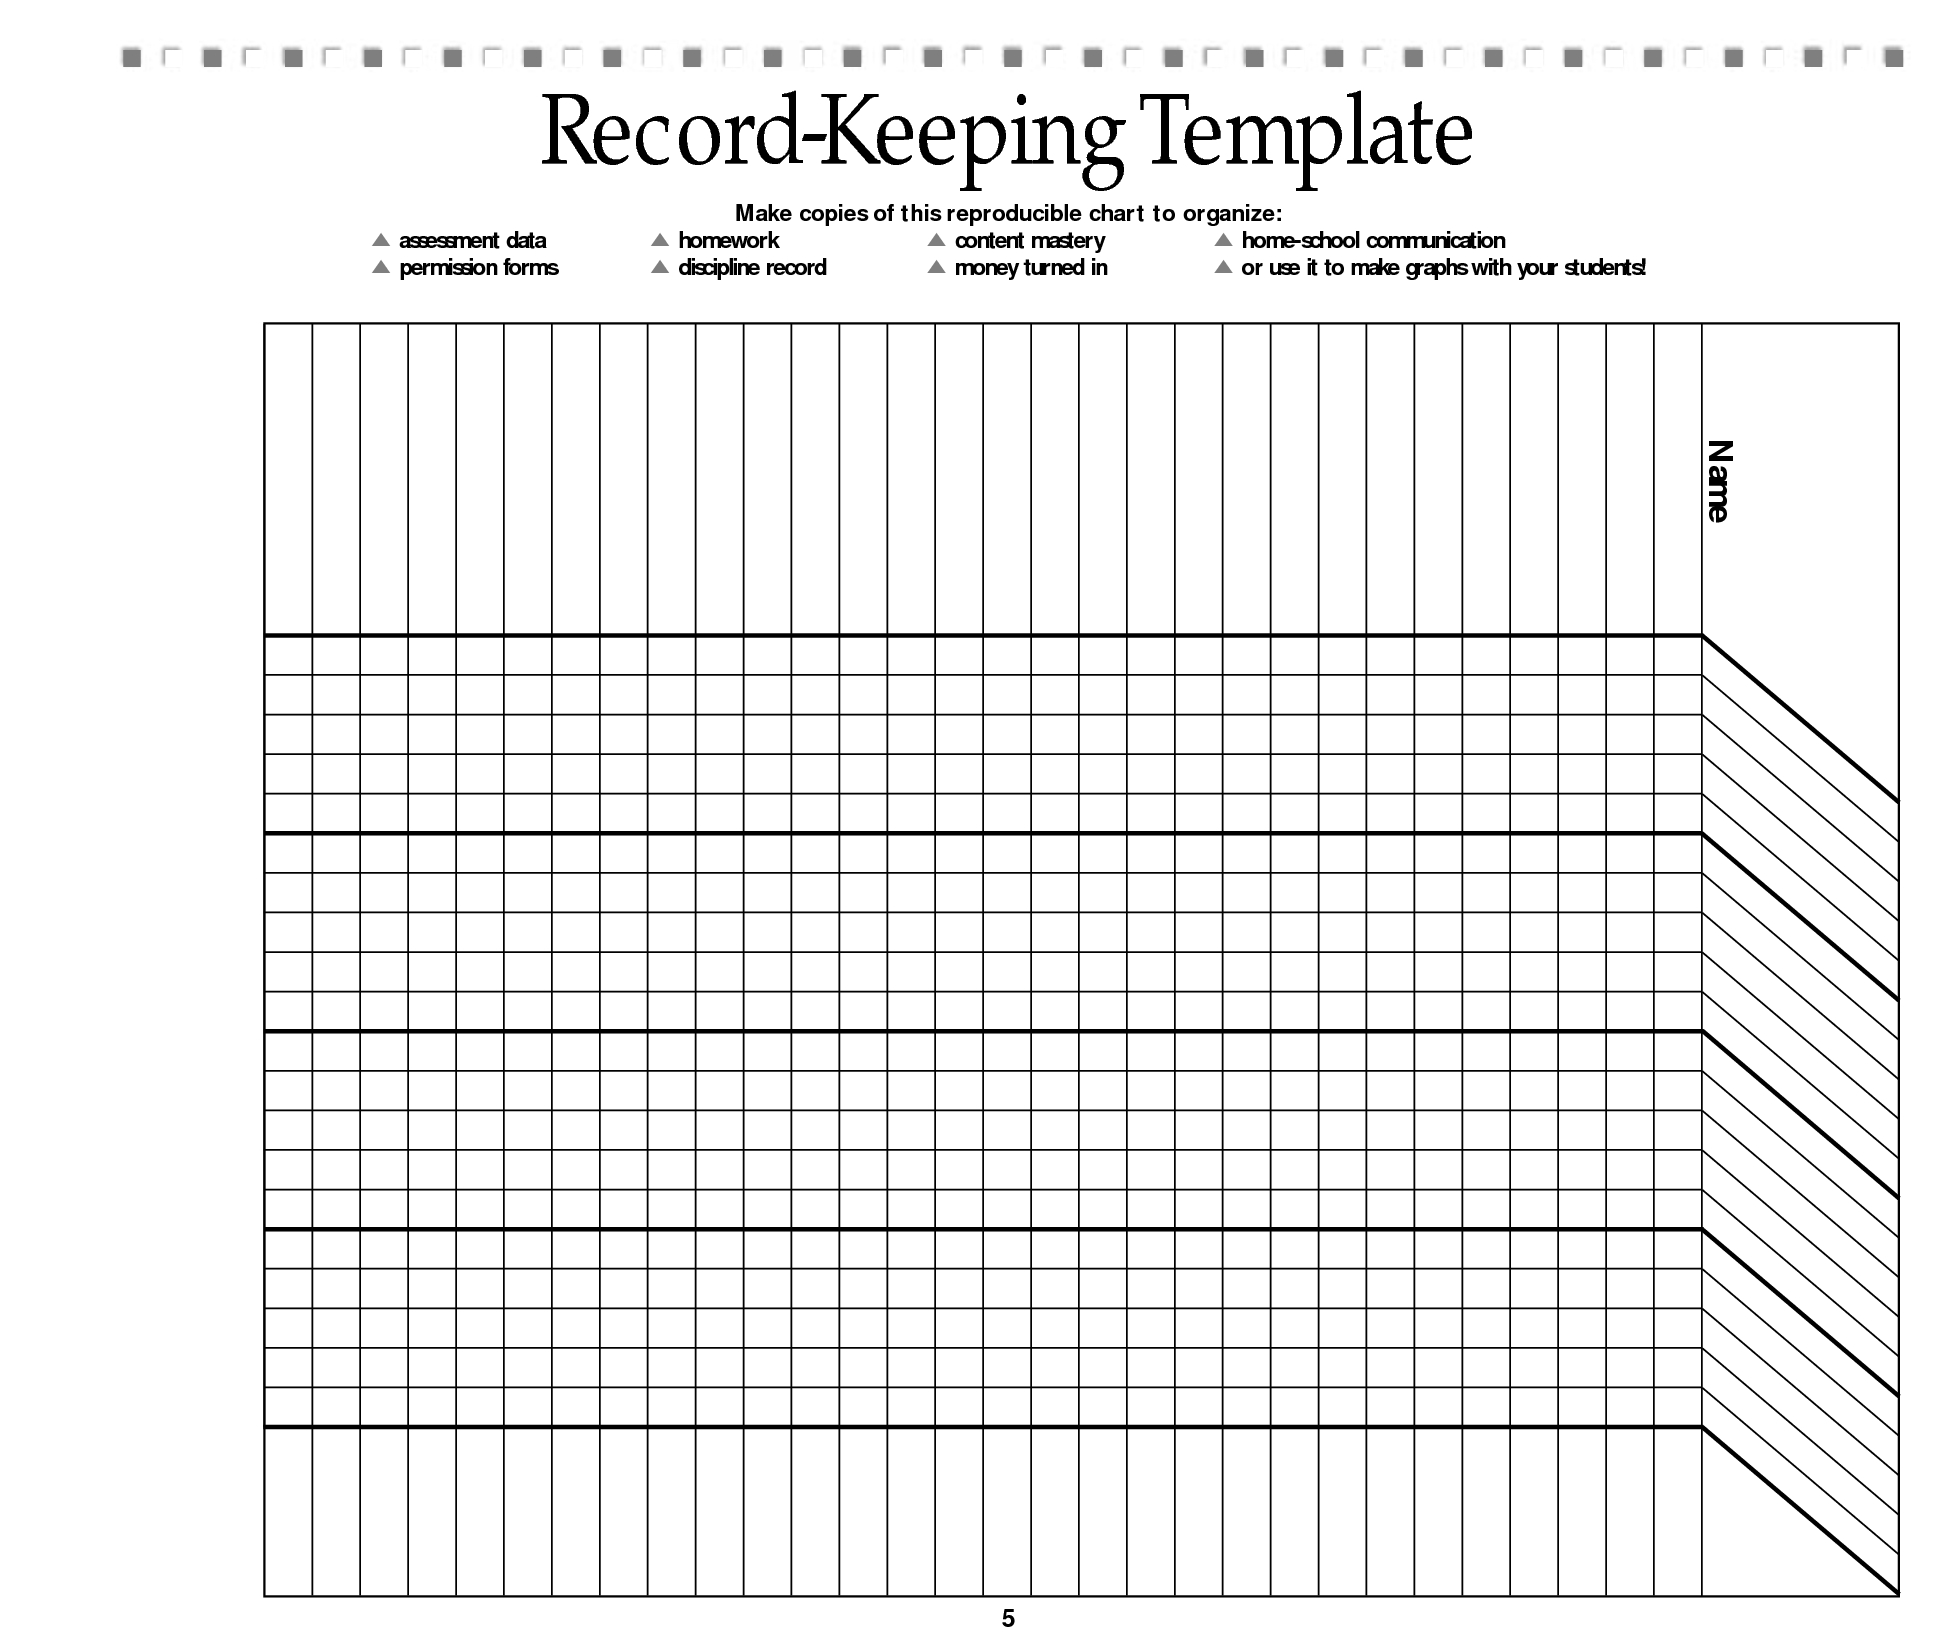 Free Printable Record Keeping Forms | Classroom | Homeschool - Free Printable Attendance Sheets For Homeschool